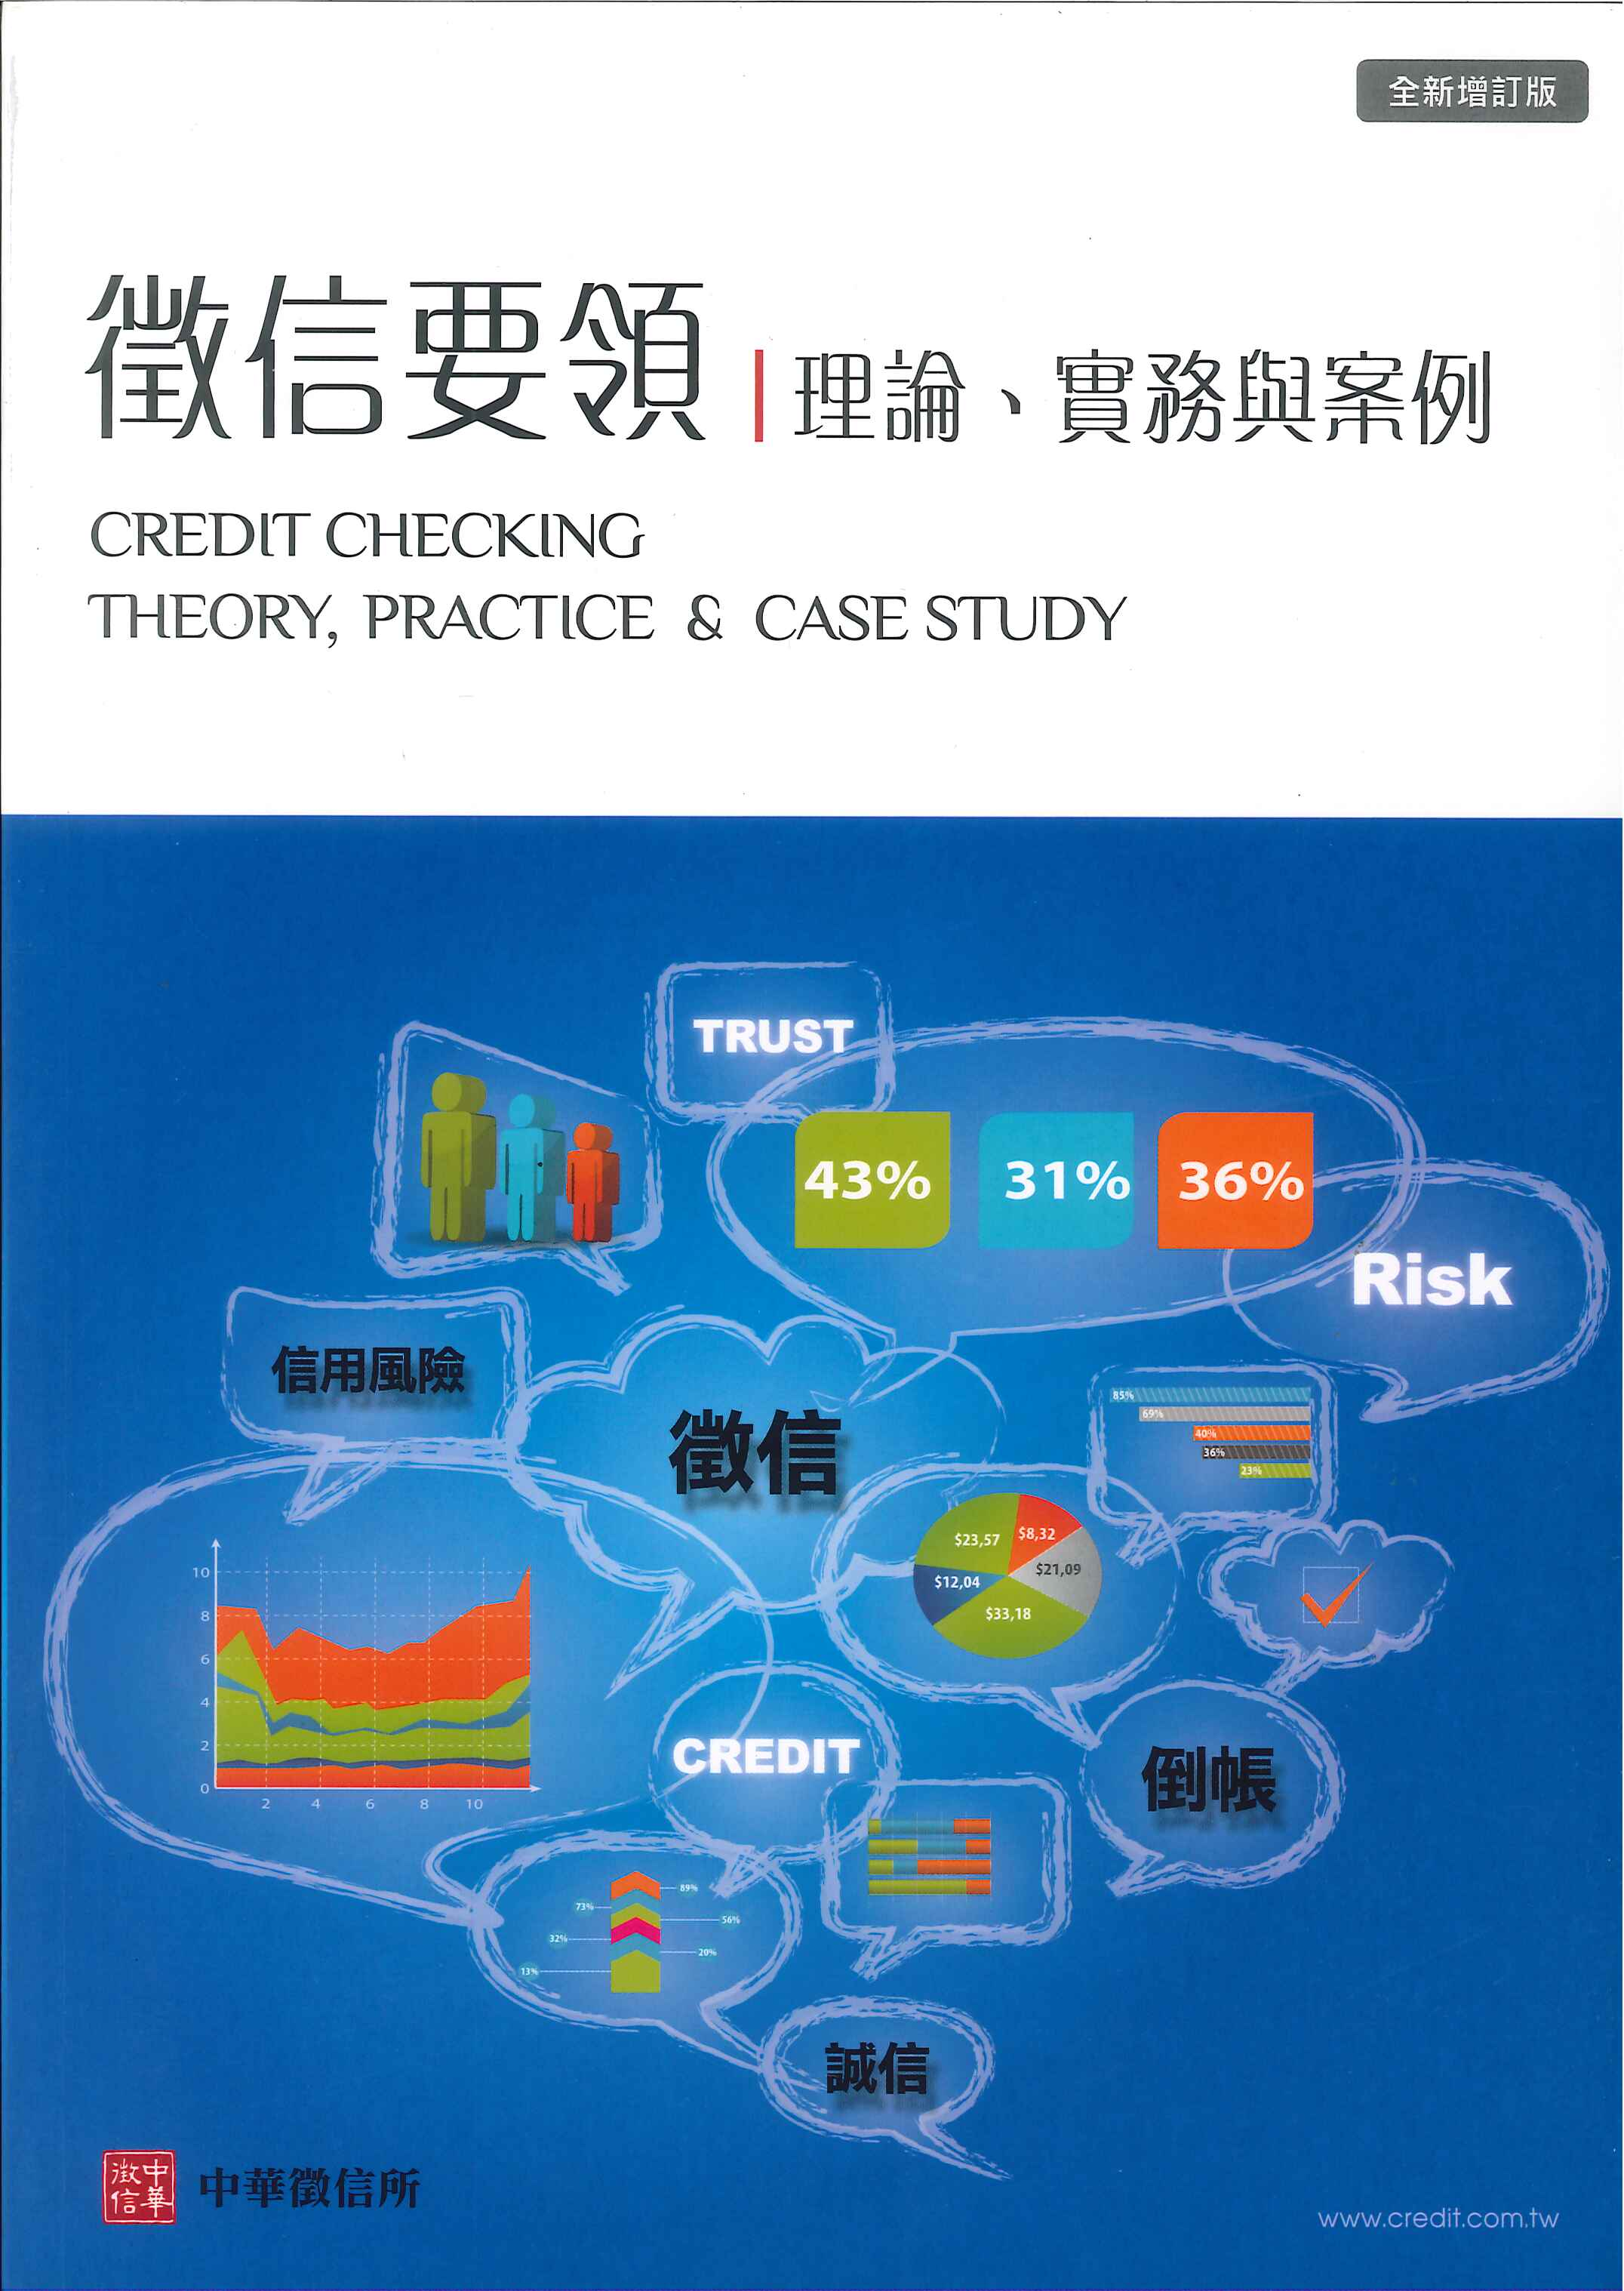 徵信要領:理論、實務與案例=Credit checking: theory, practice & case study